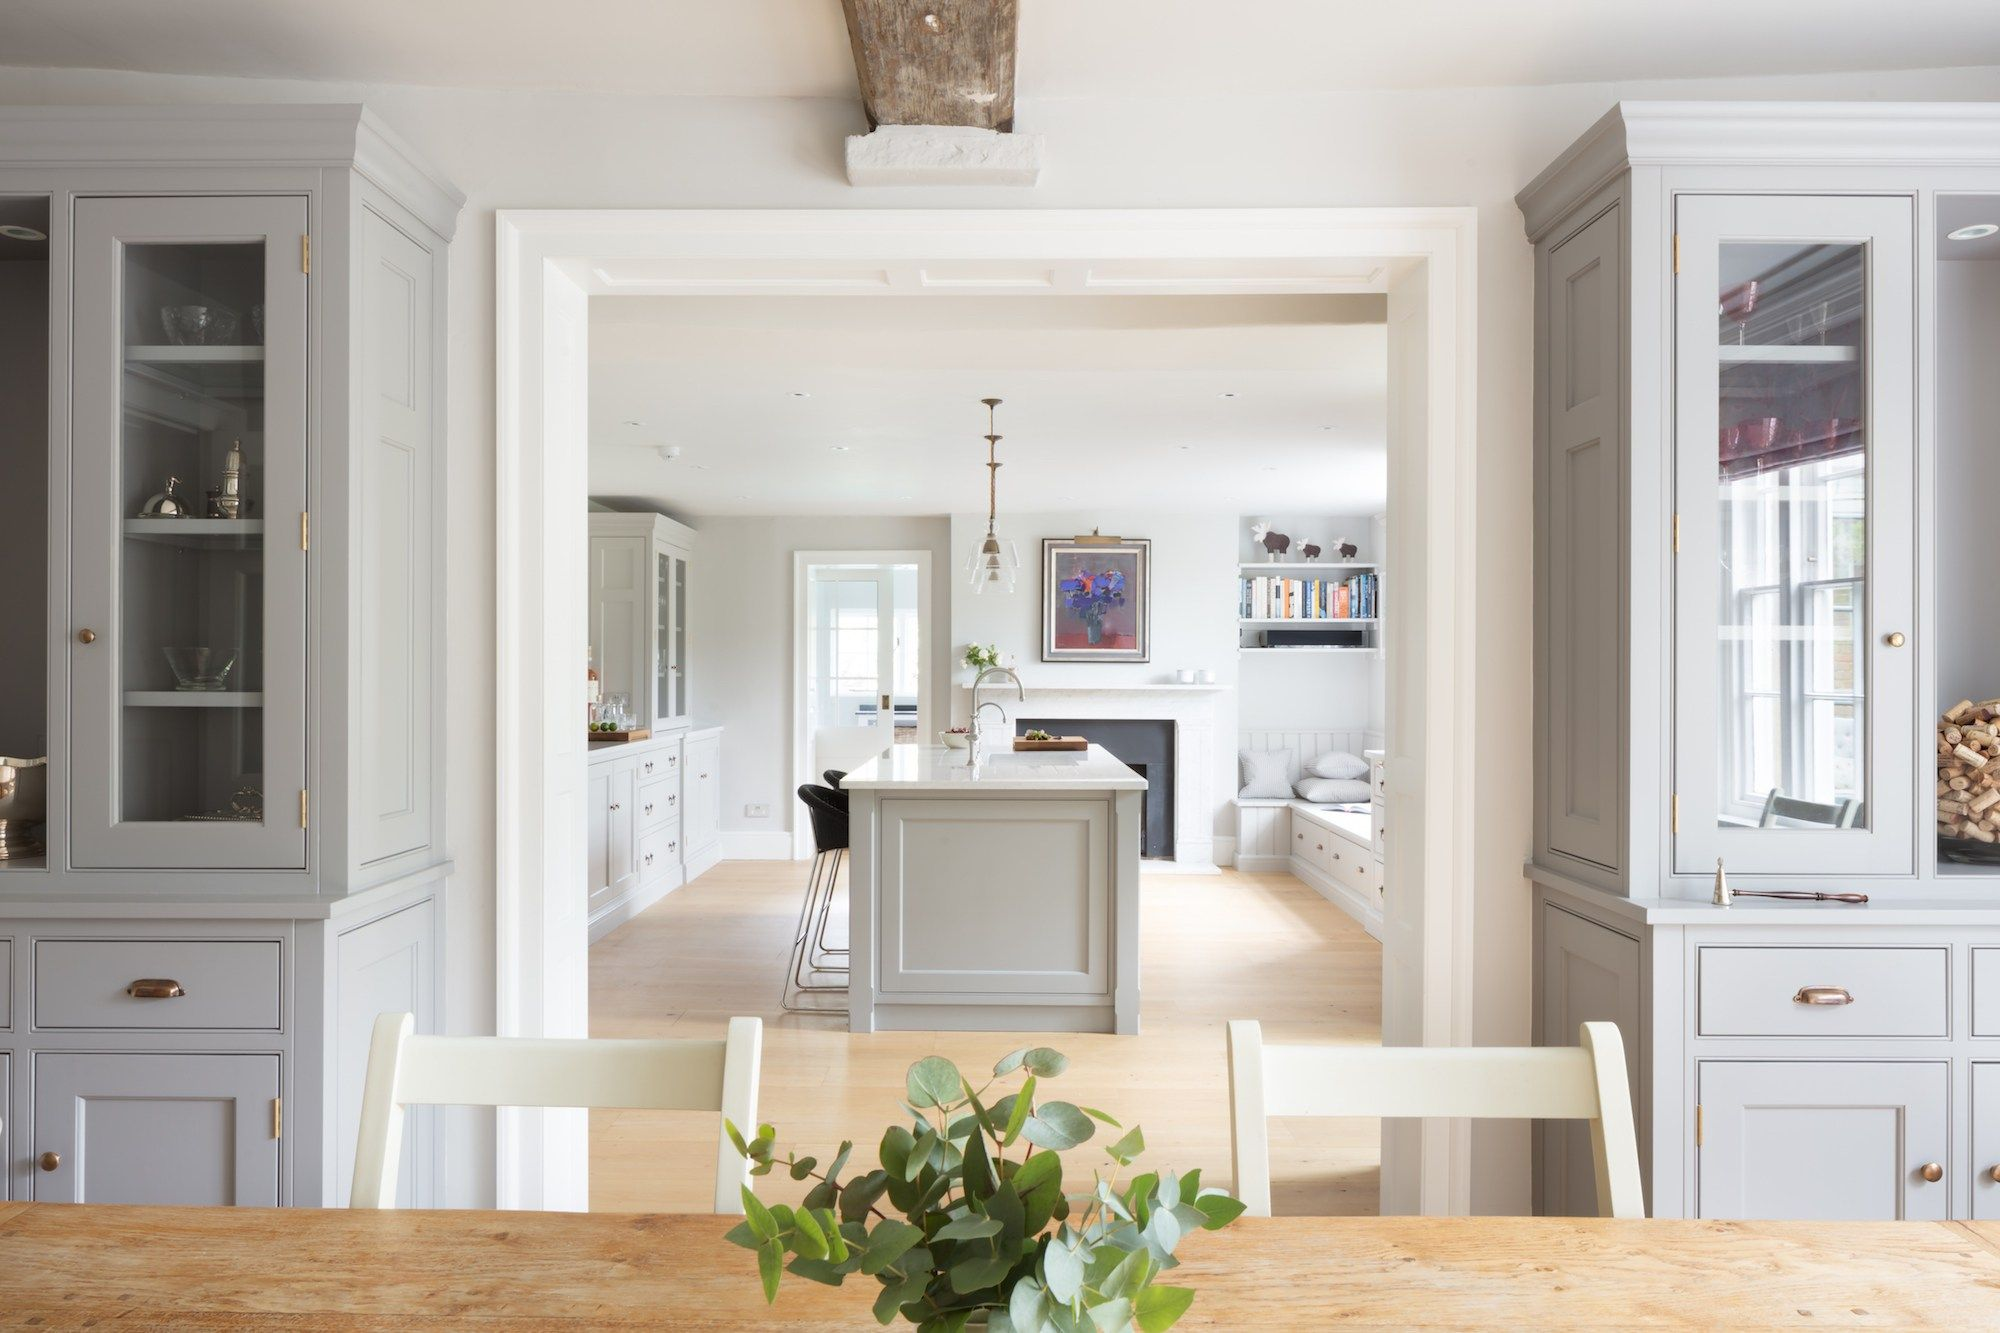 Instead of a totally open kitchen/dining room, perhaps we open up a ...